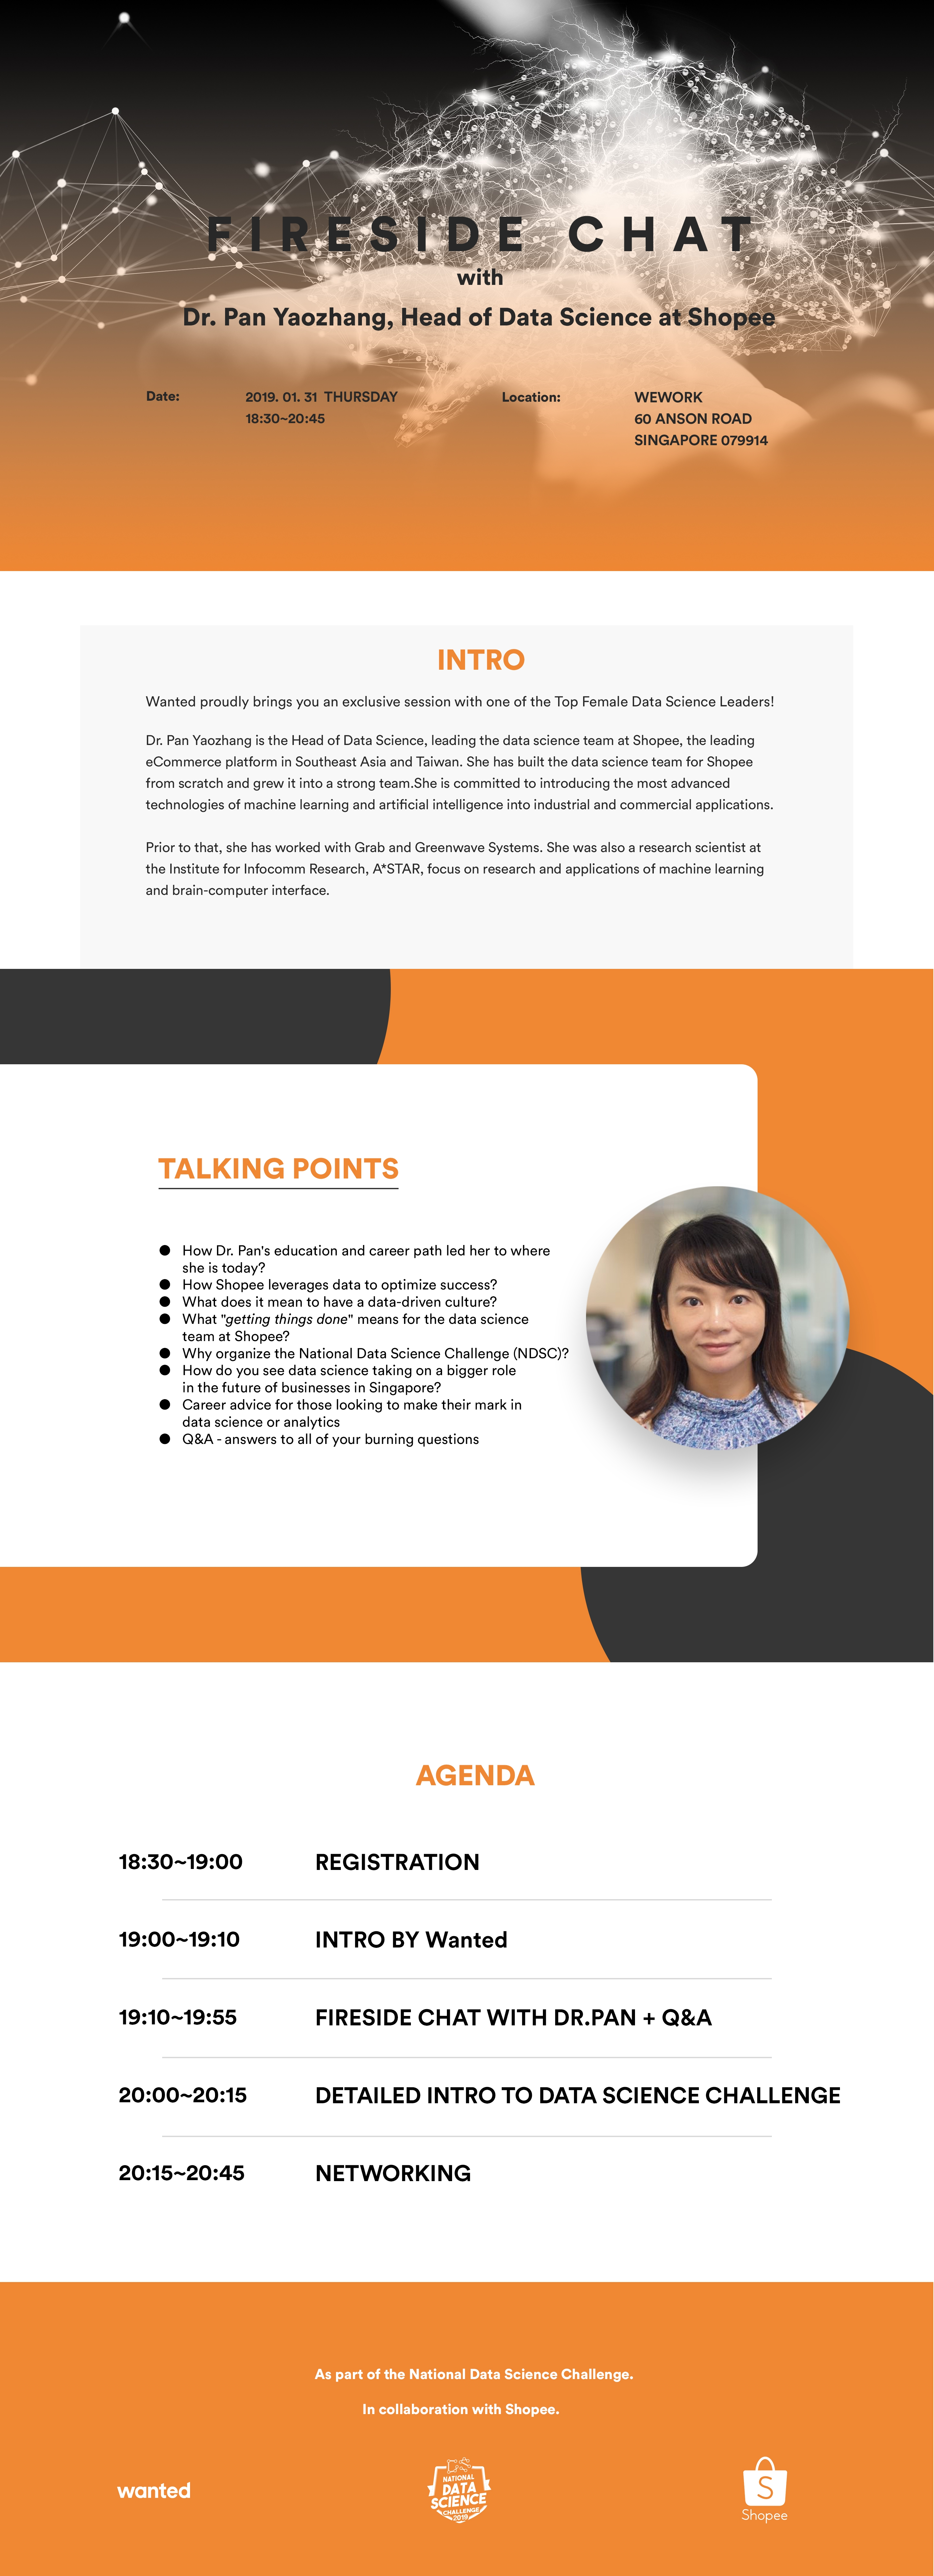 Fireside Chat with Dr  Pan Yao Zhang, Head of Data Science at Shopee